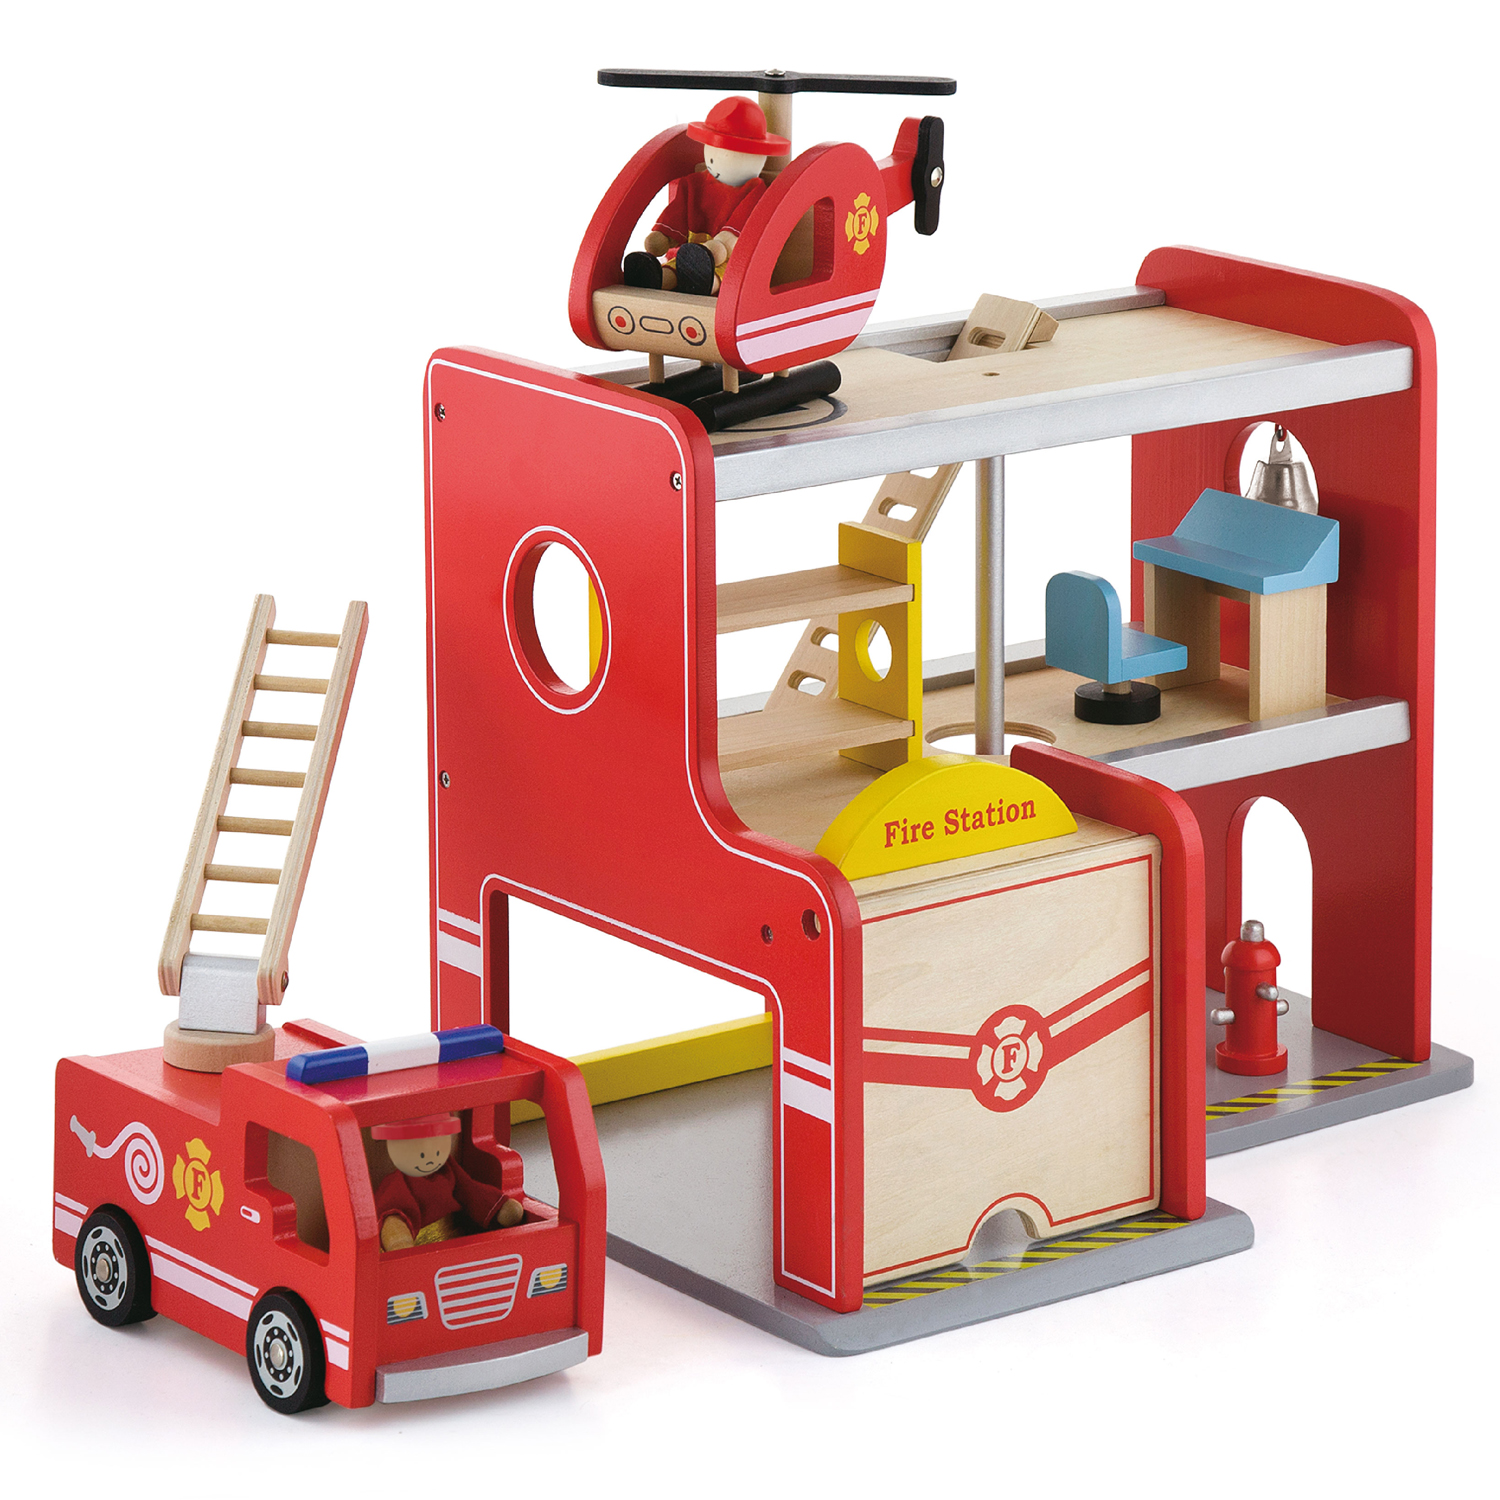 Viga Toys Wooden Fire Station New Classic Toys